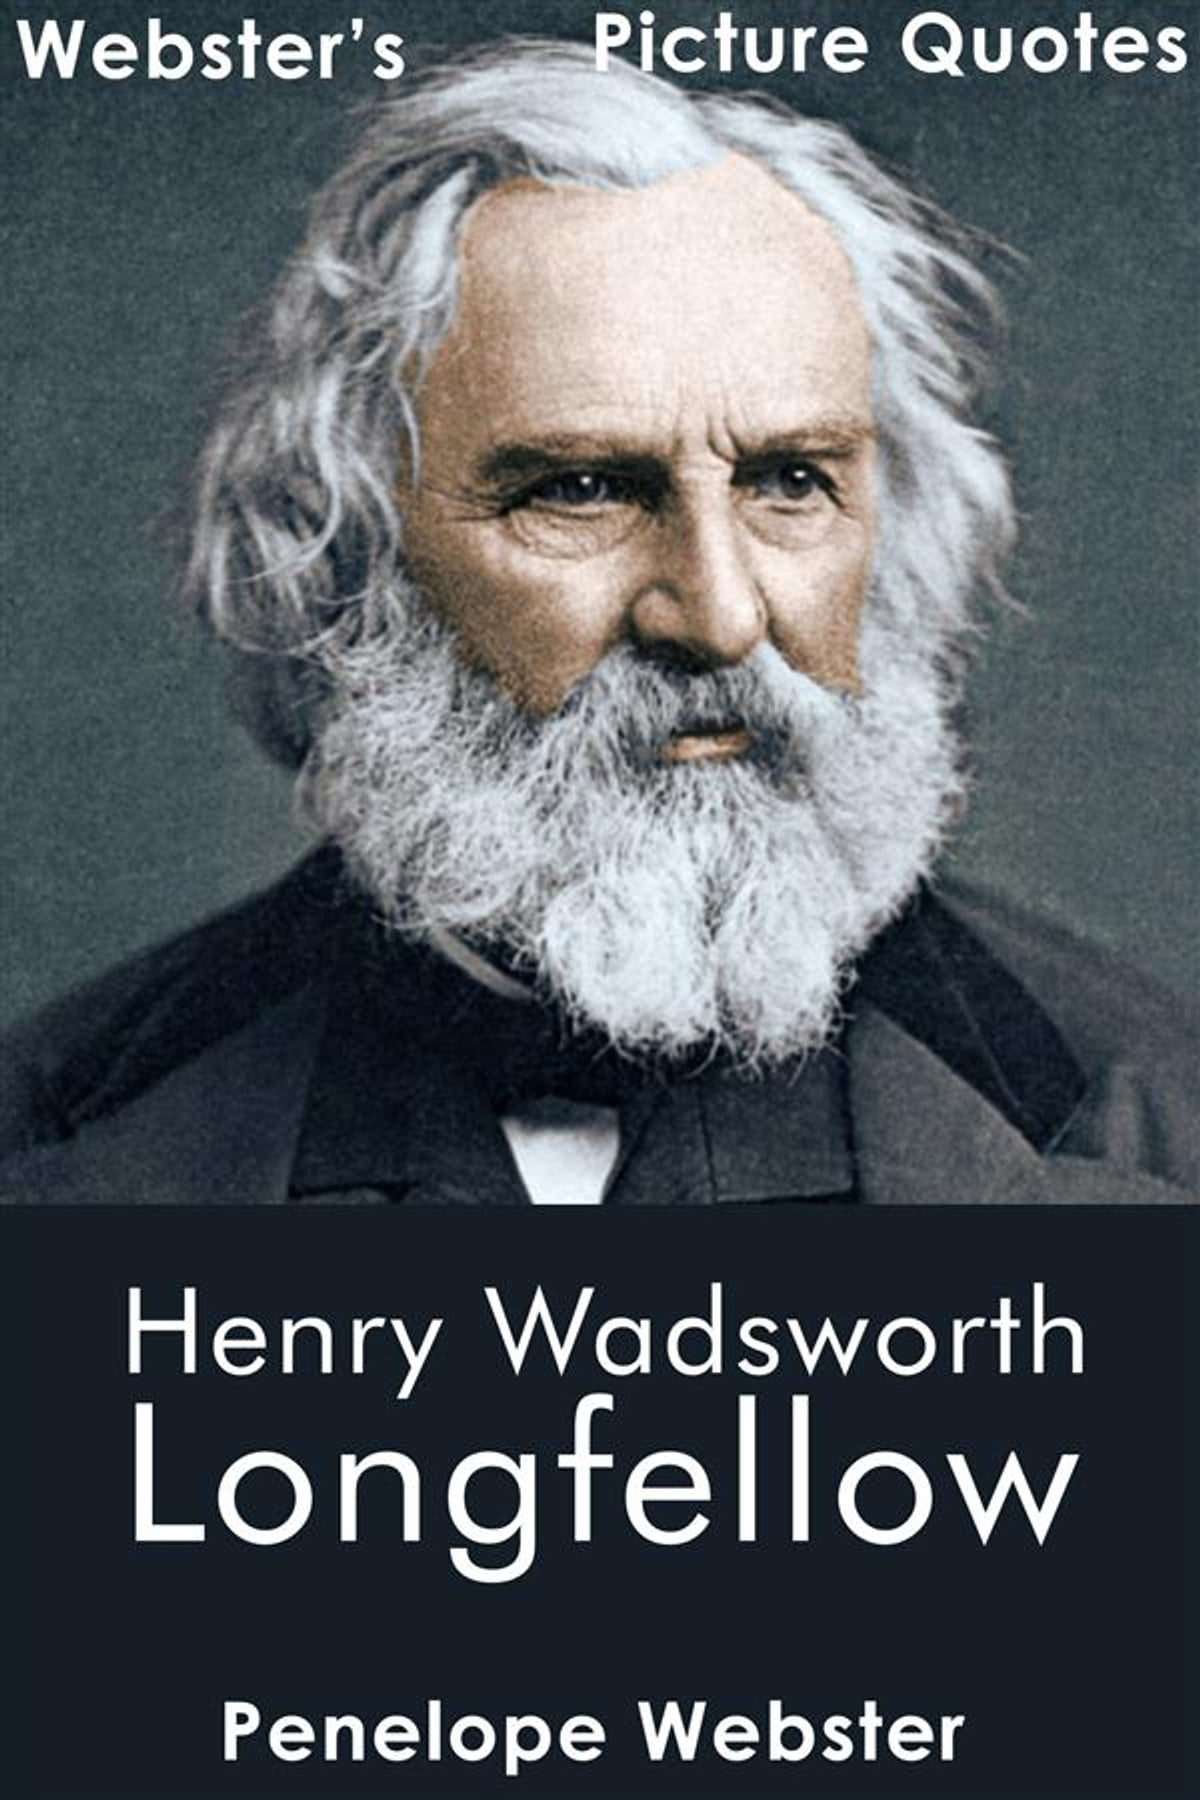 Websters Henry Wadsworth Longfellow Picture Quotes Ebook By